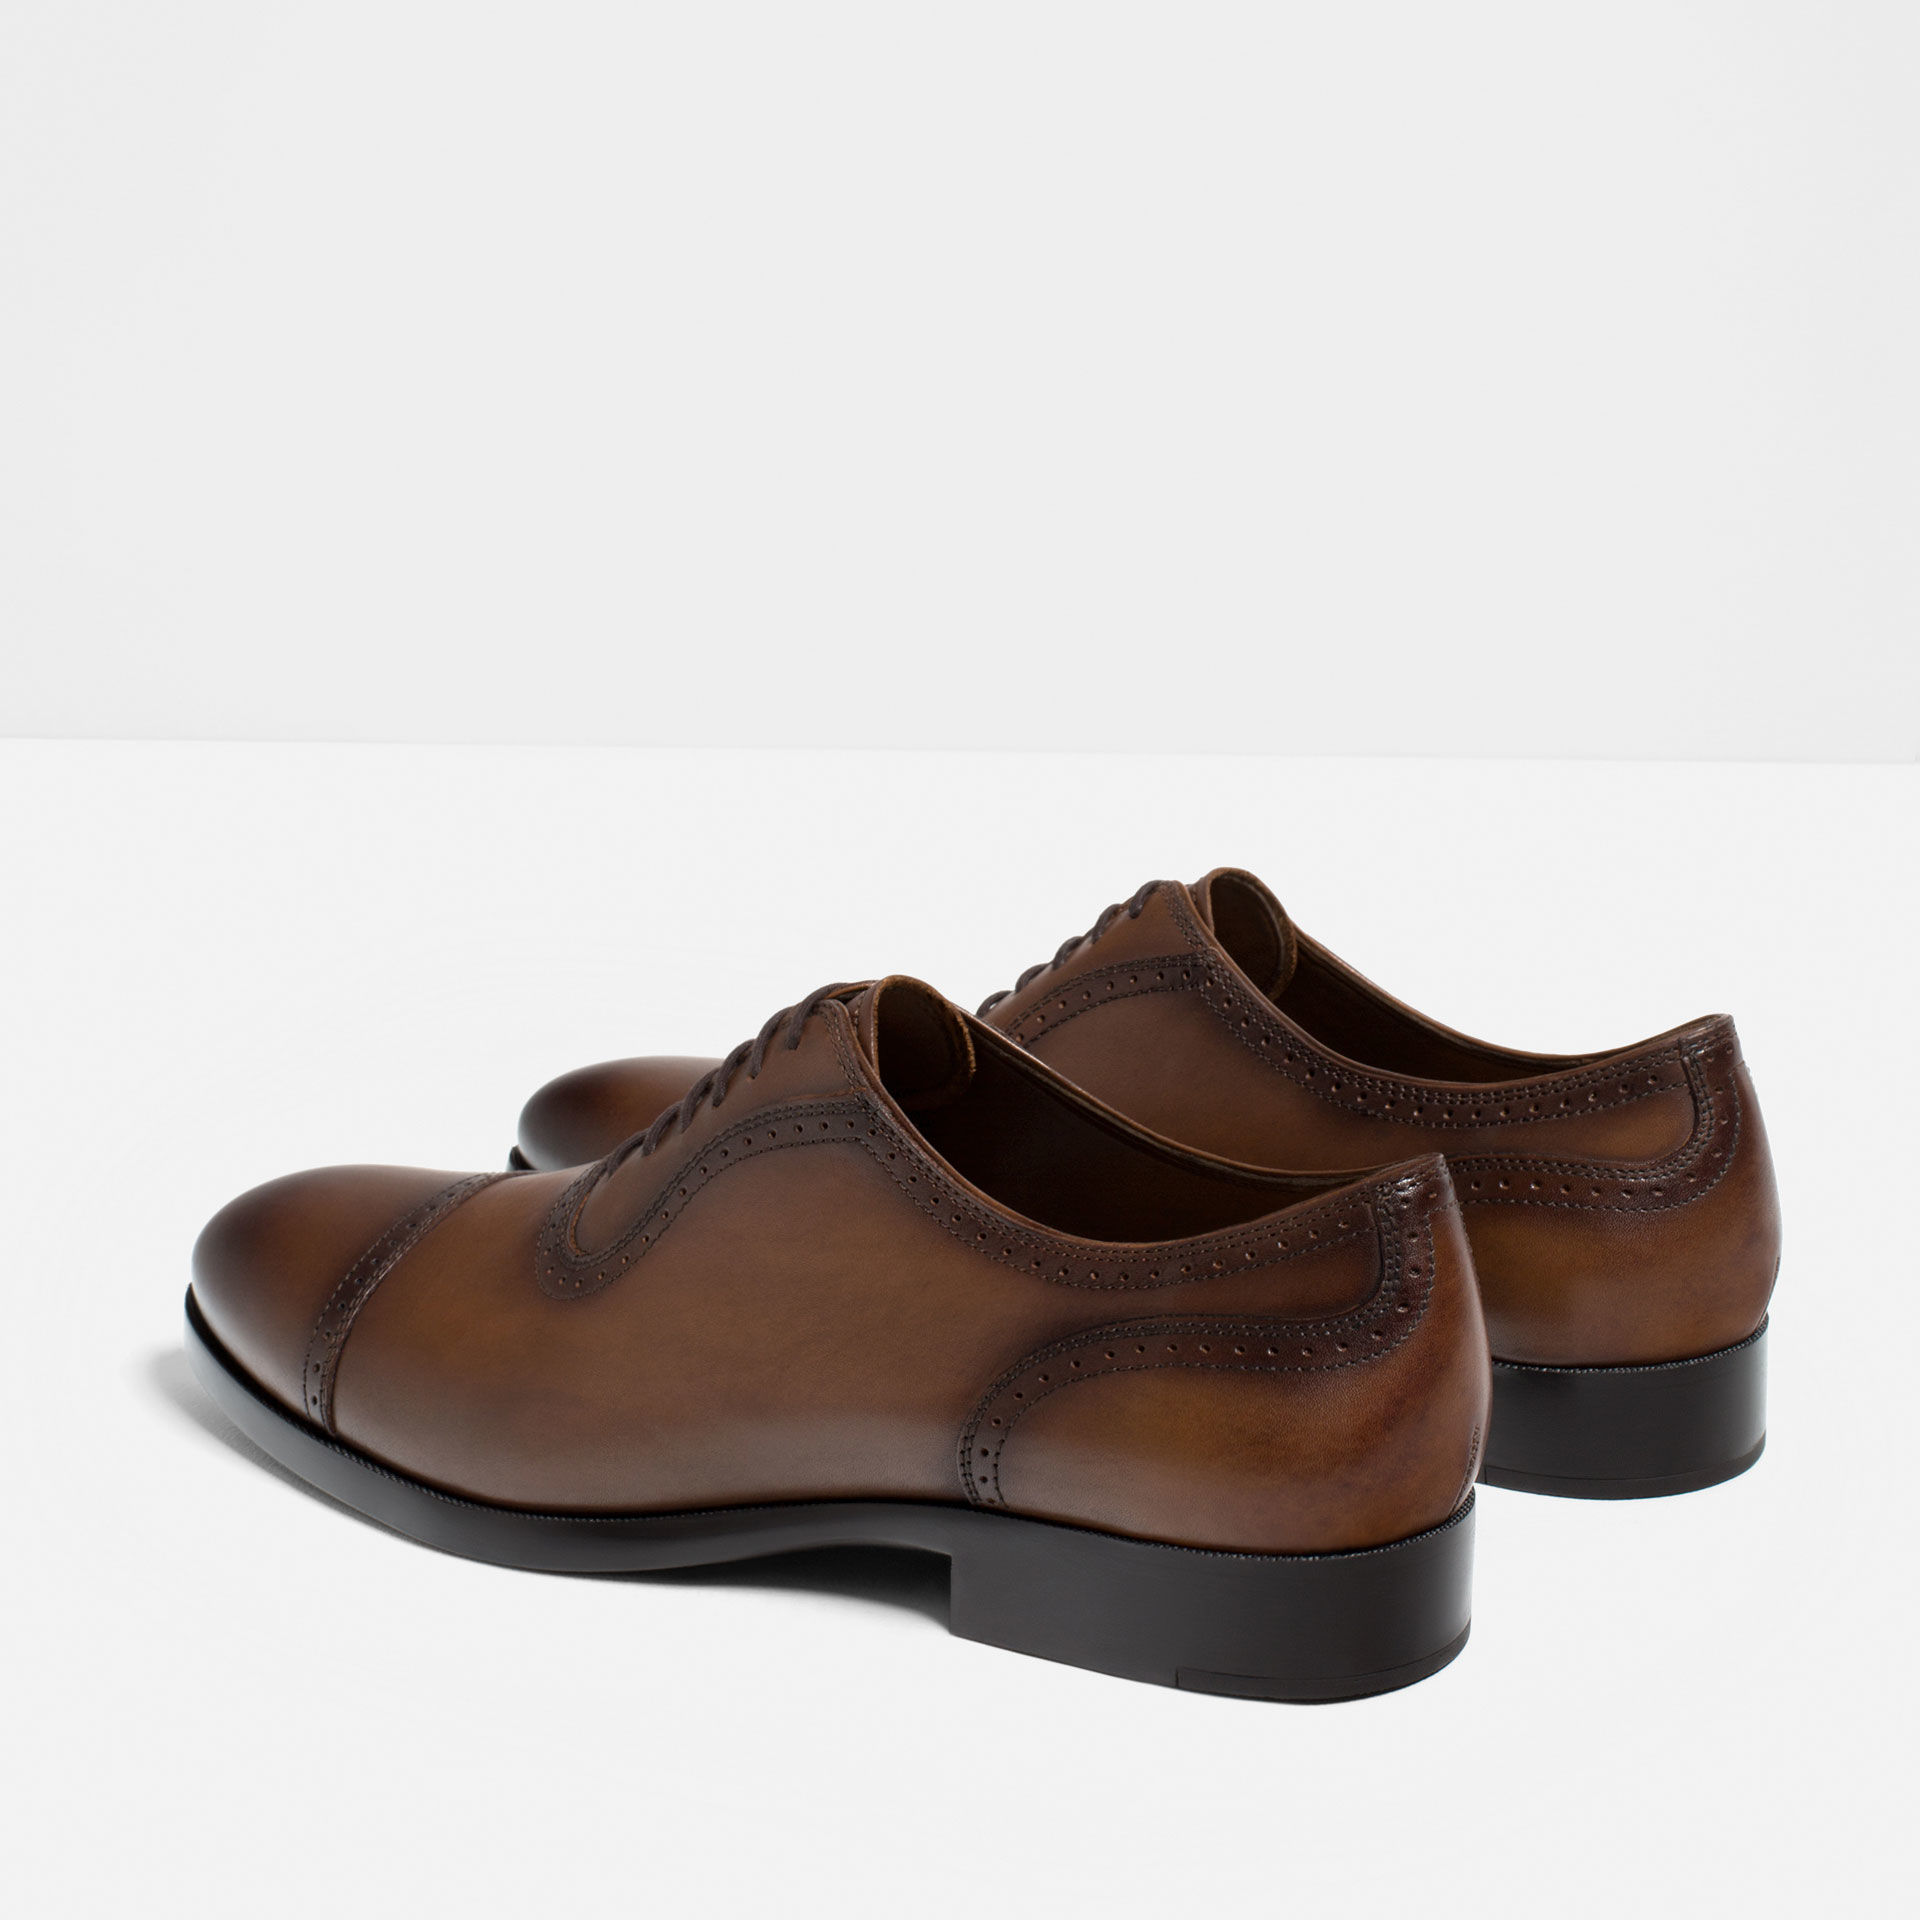 Zara Men Brown Leather Brogued Leather Oxford Shoes